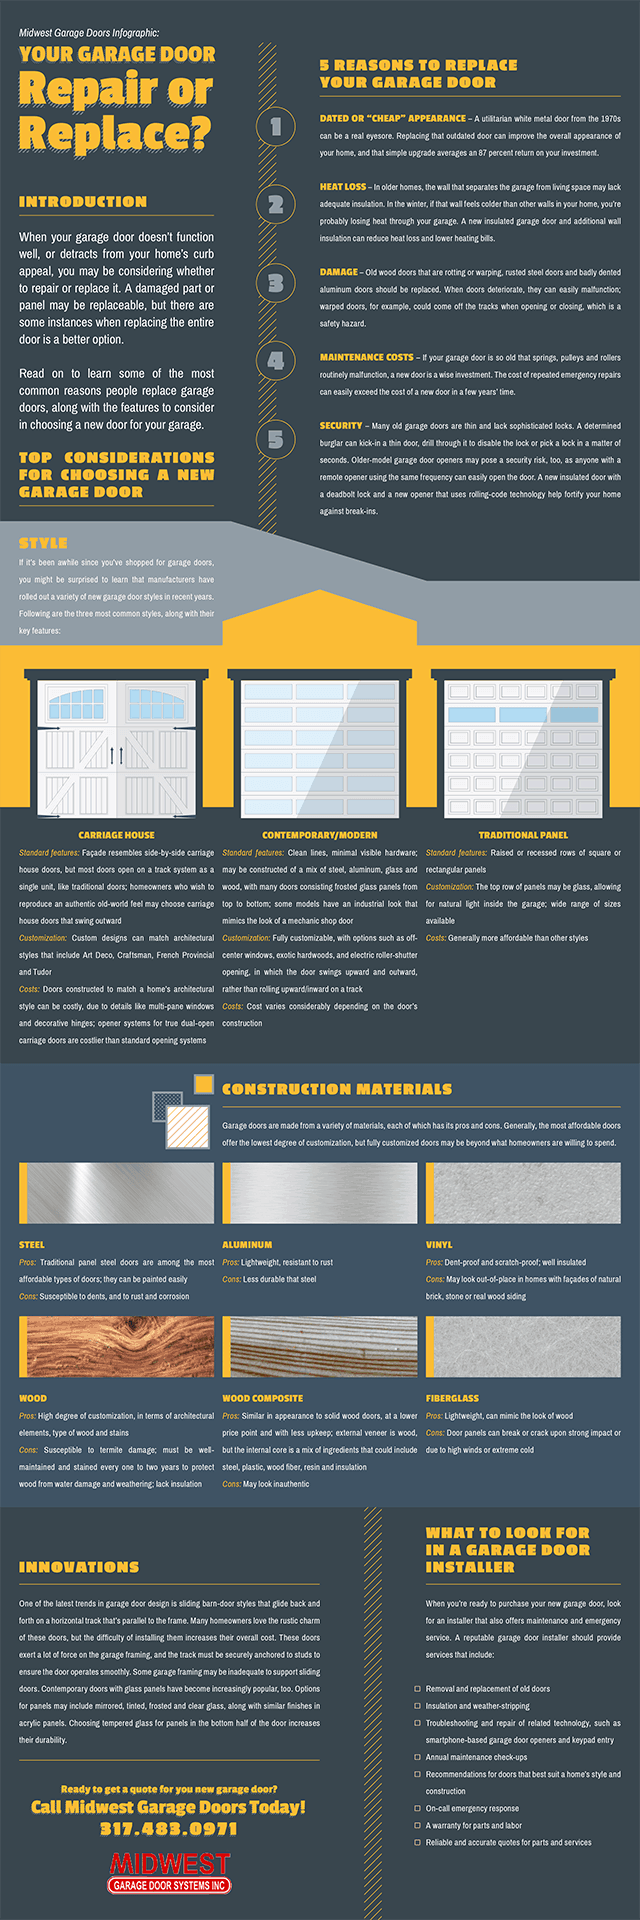 Links to Infographic PDF